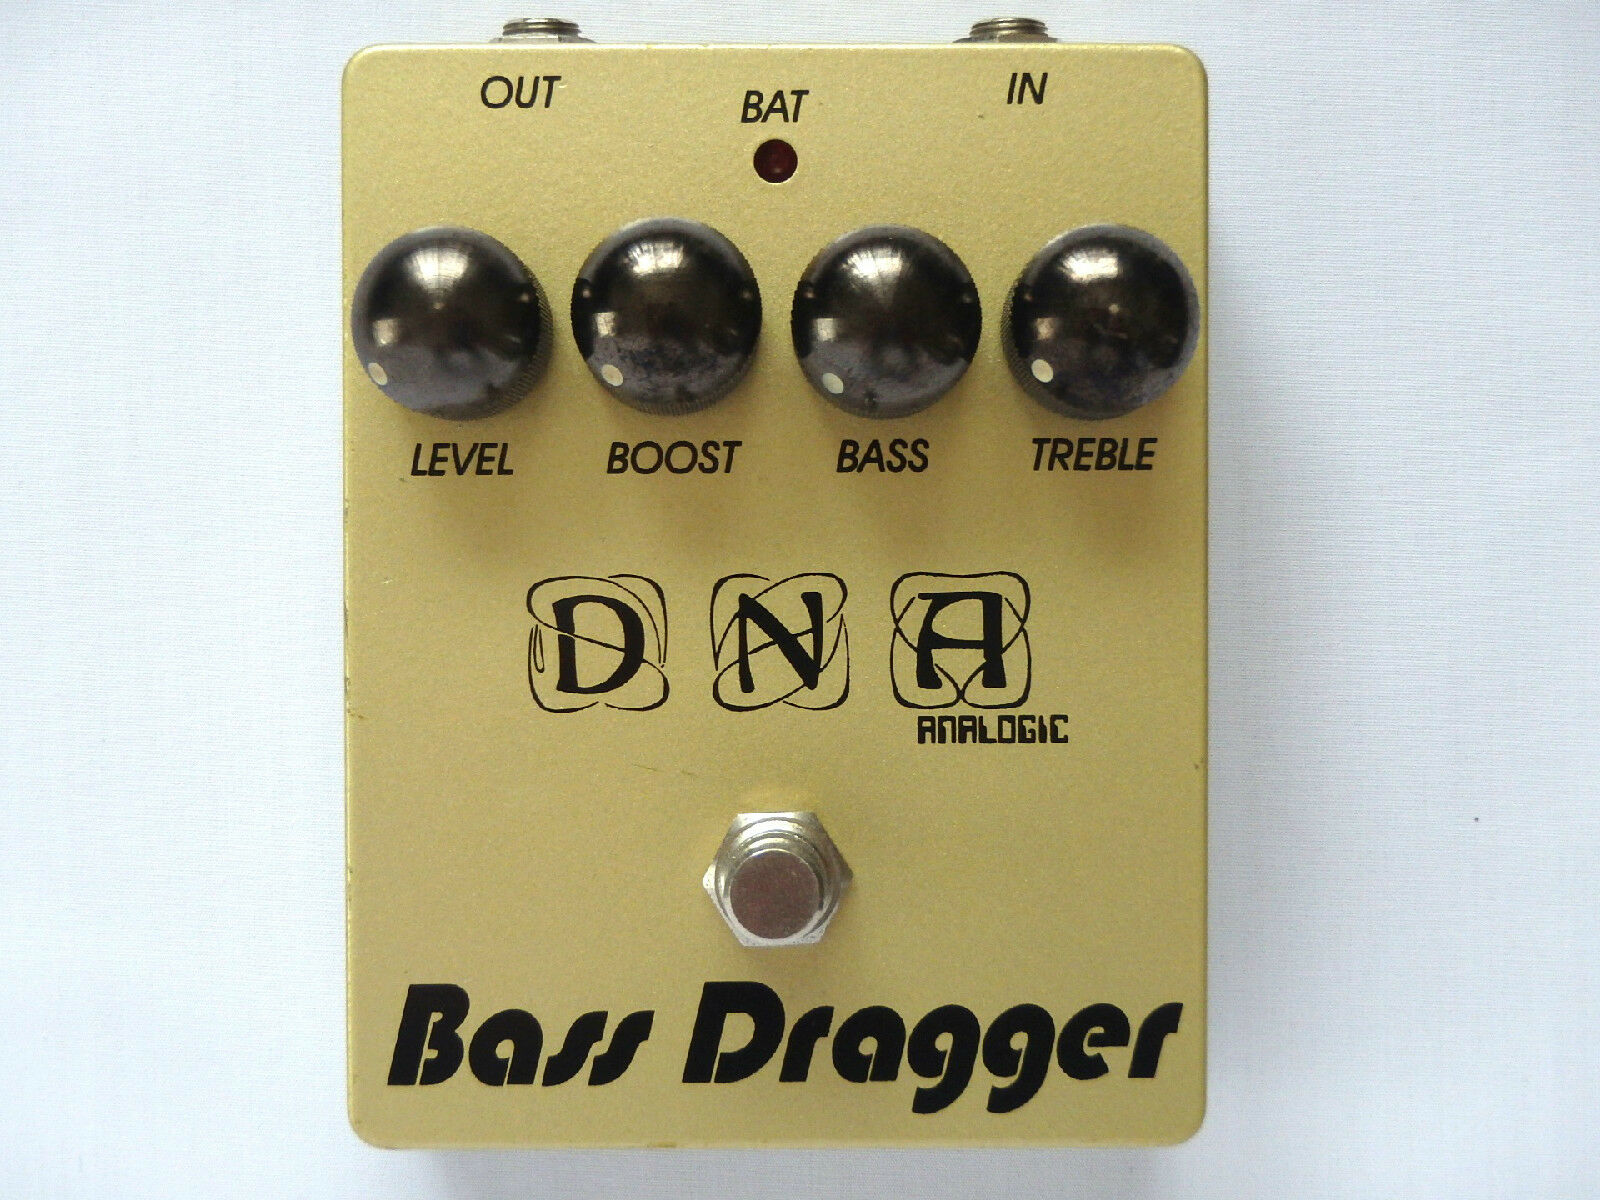 DNA Analogic Bass Dragger 60th Anniversary Edition Bass Guitar Effect Pedal